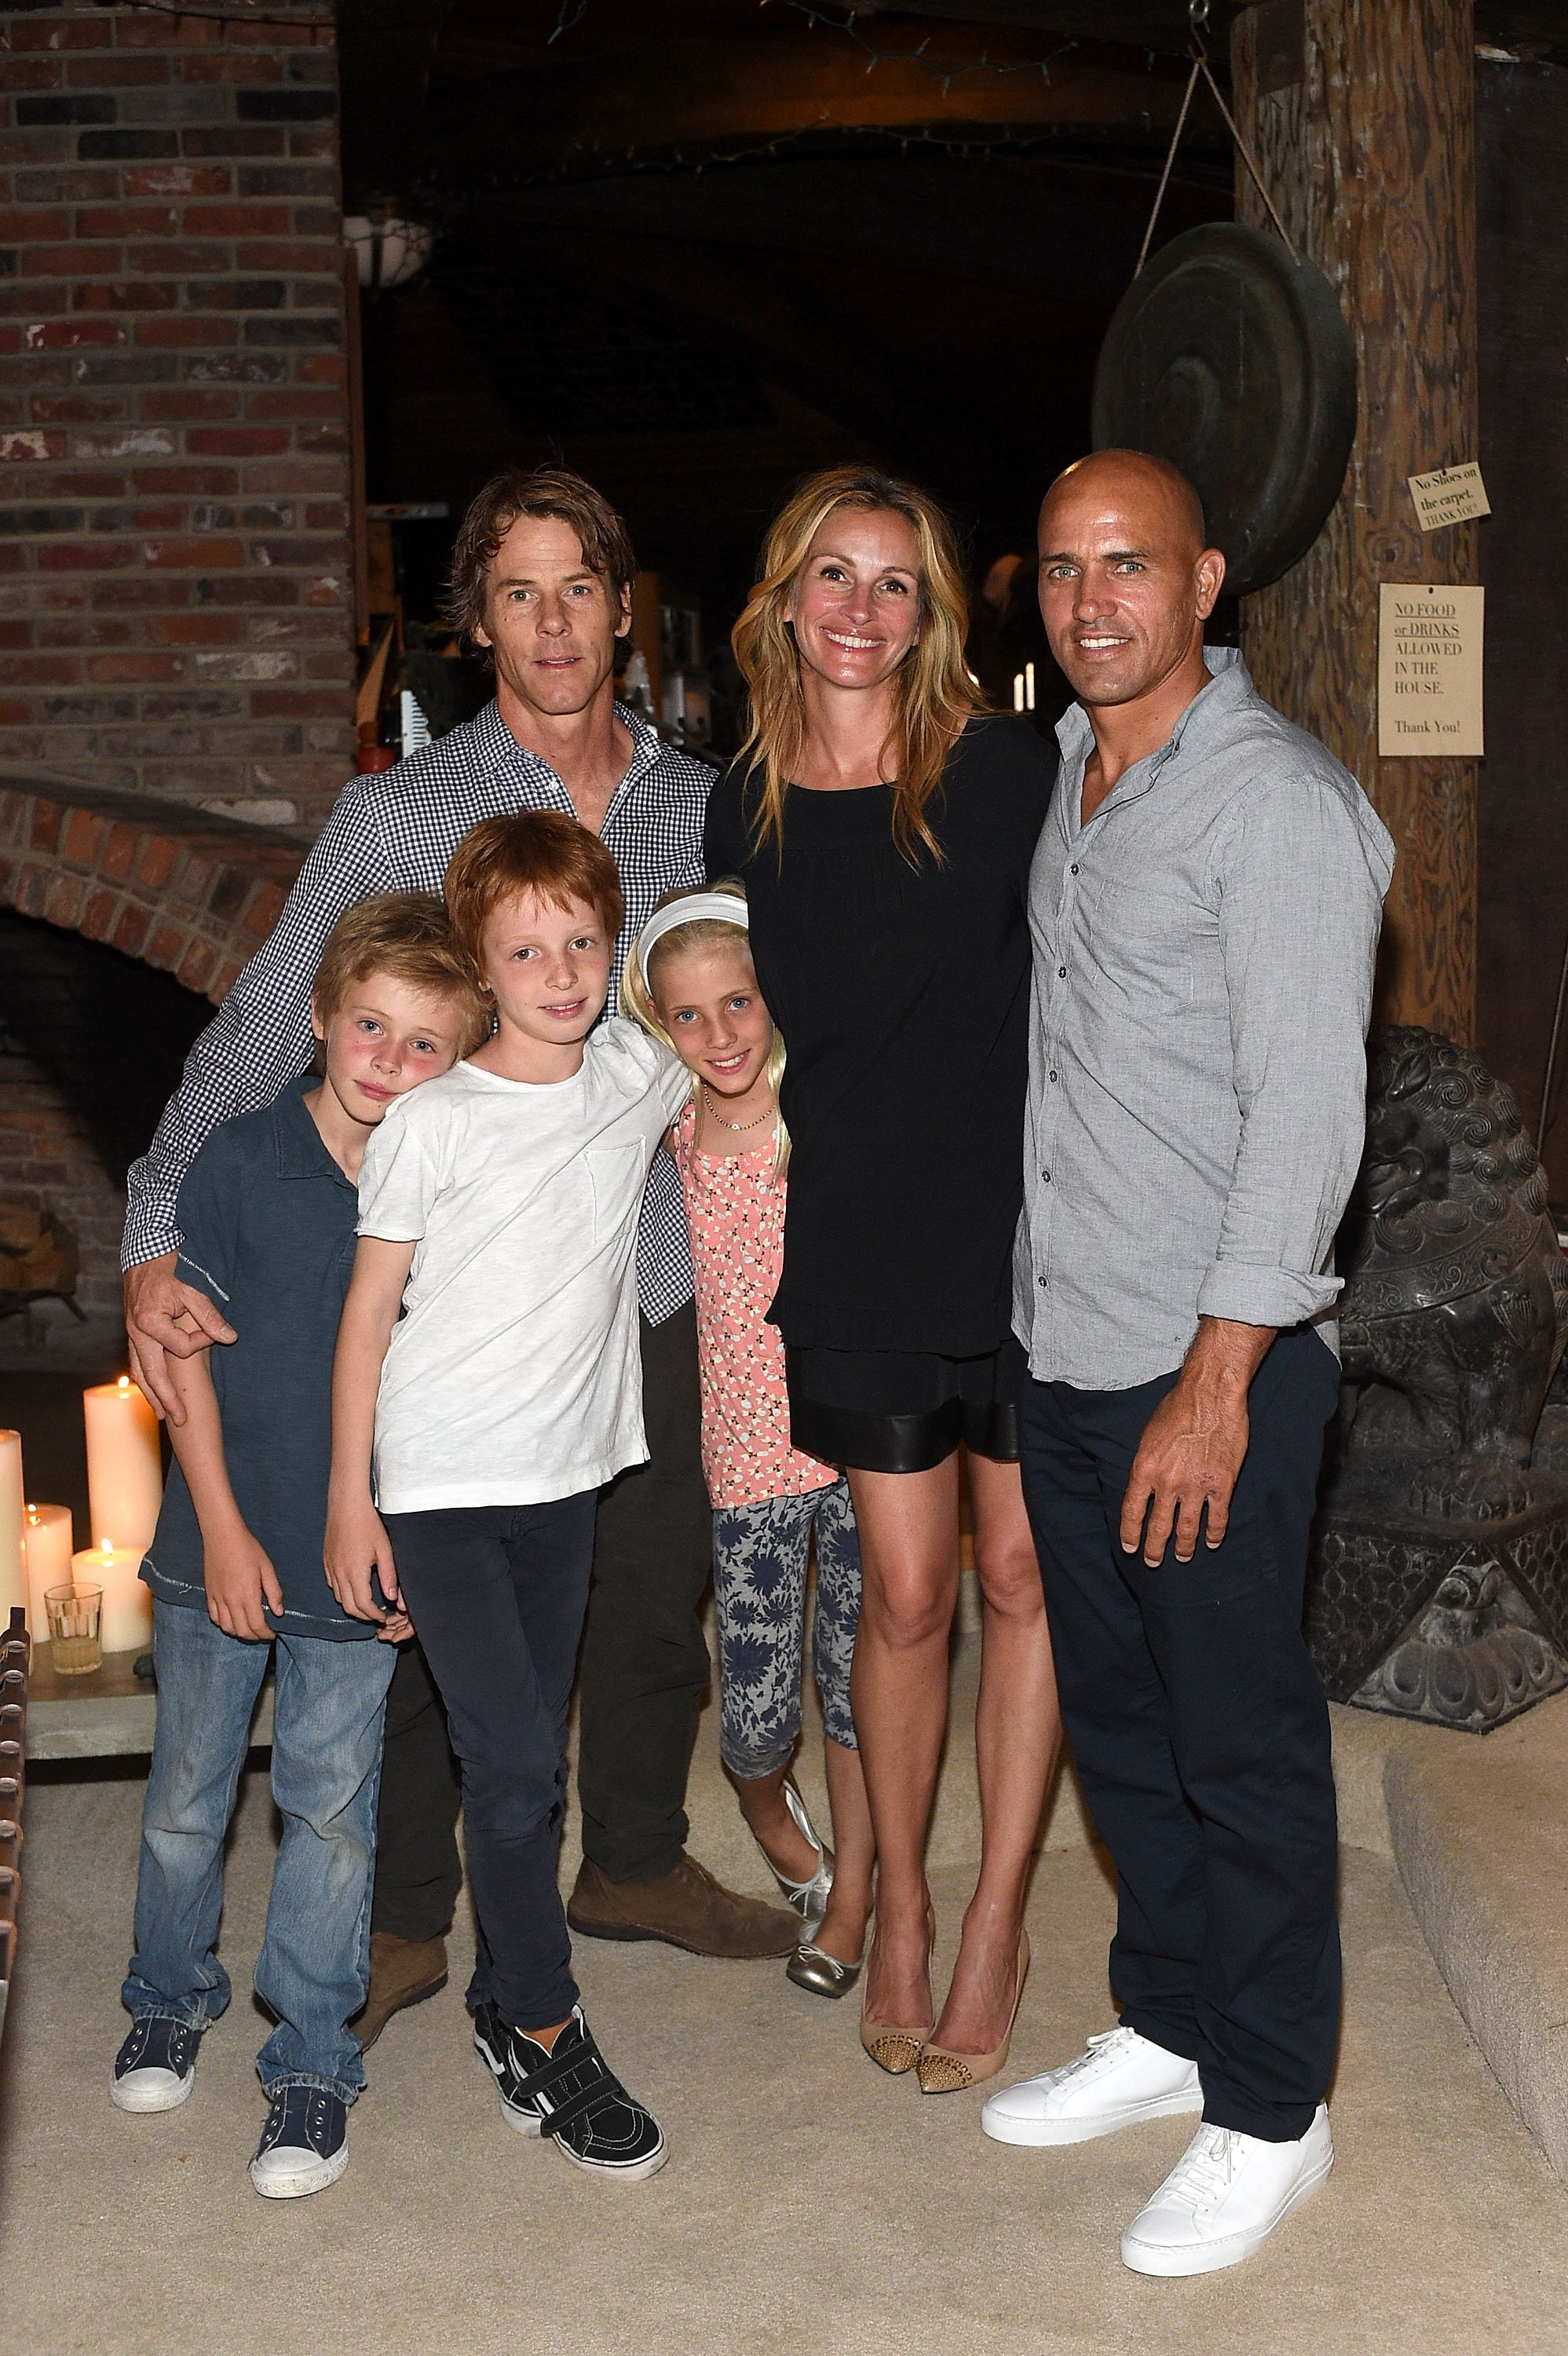 Daniel Moder, Julia Roberts, Kelly Slater, Phinnaeus Moder, Henry Daniel Moder and Hazel Moder attend Kelly Slater, John Moore and Friends Celebrate the Launch of Outerknown at Private Residence on August 29, 2015, in Malibu, California. | Source: Getty Images.